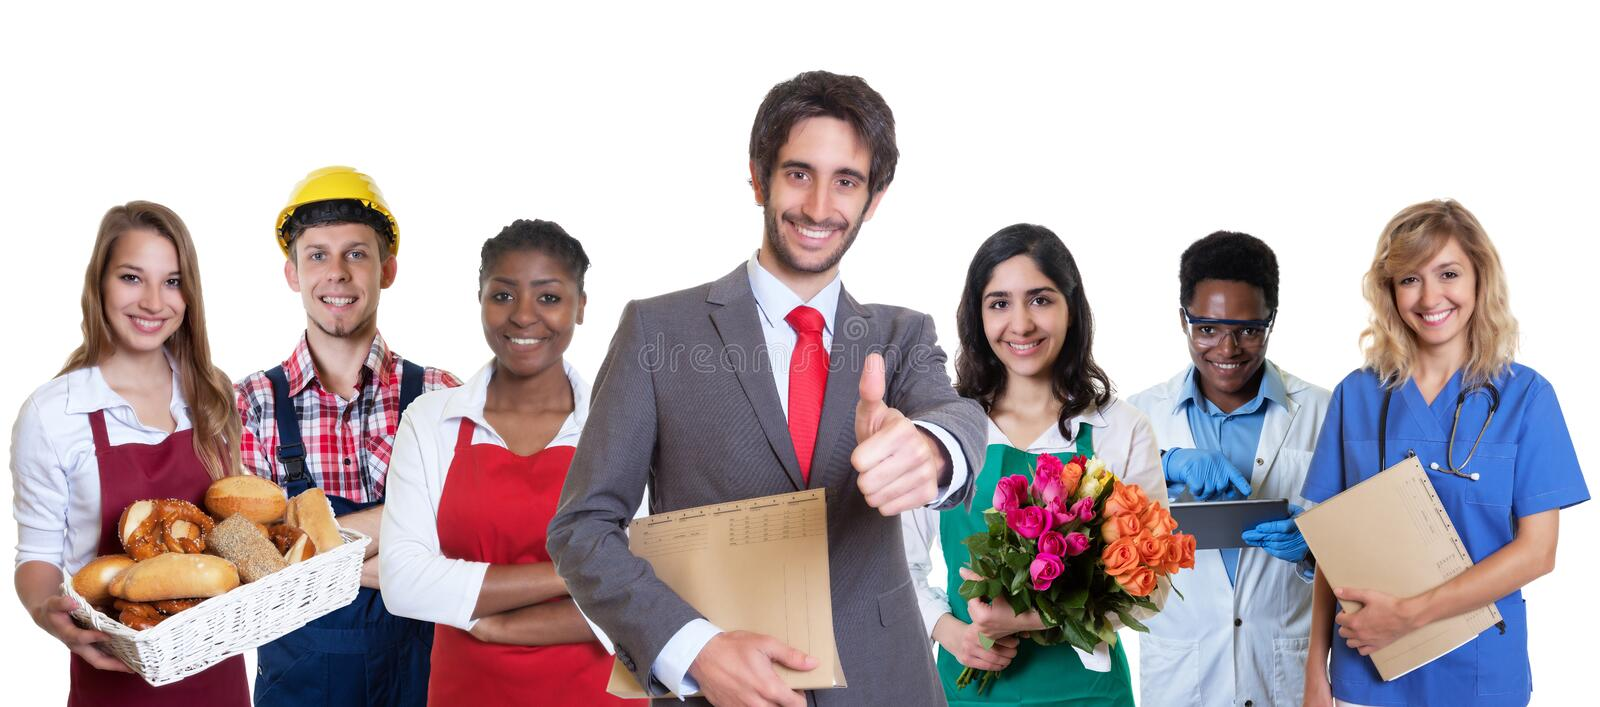 Successful turkish business trainee with group of latin and african apprentices royalty free stock photos